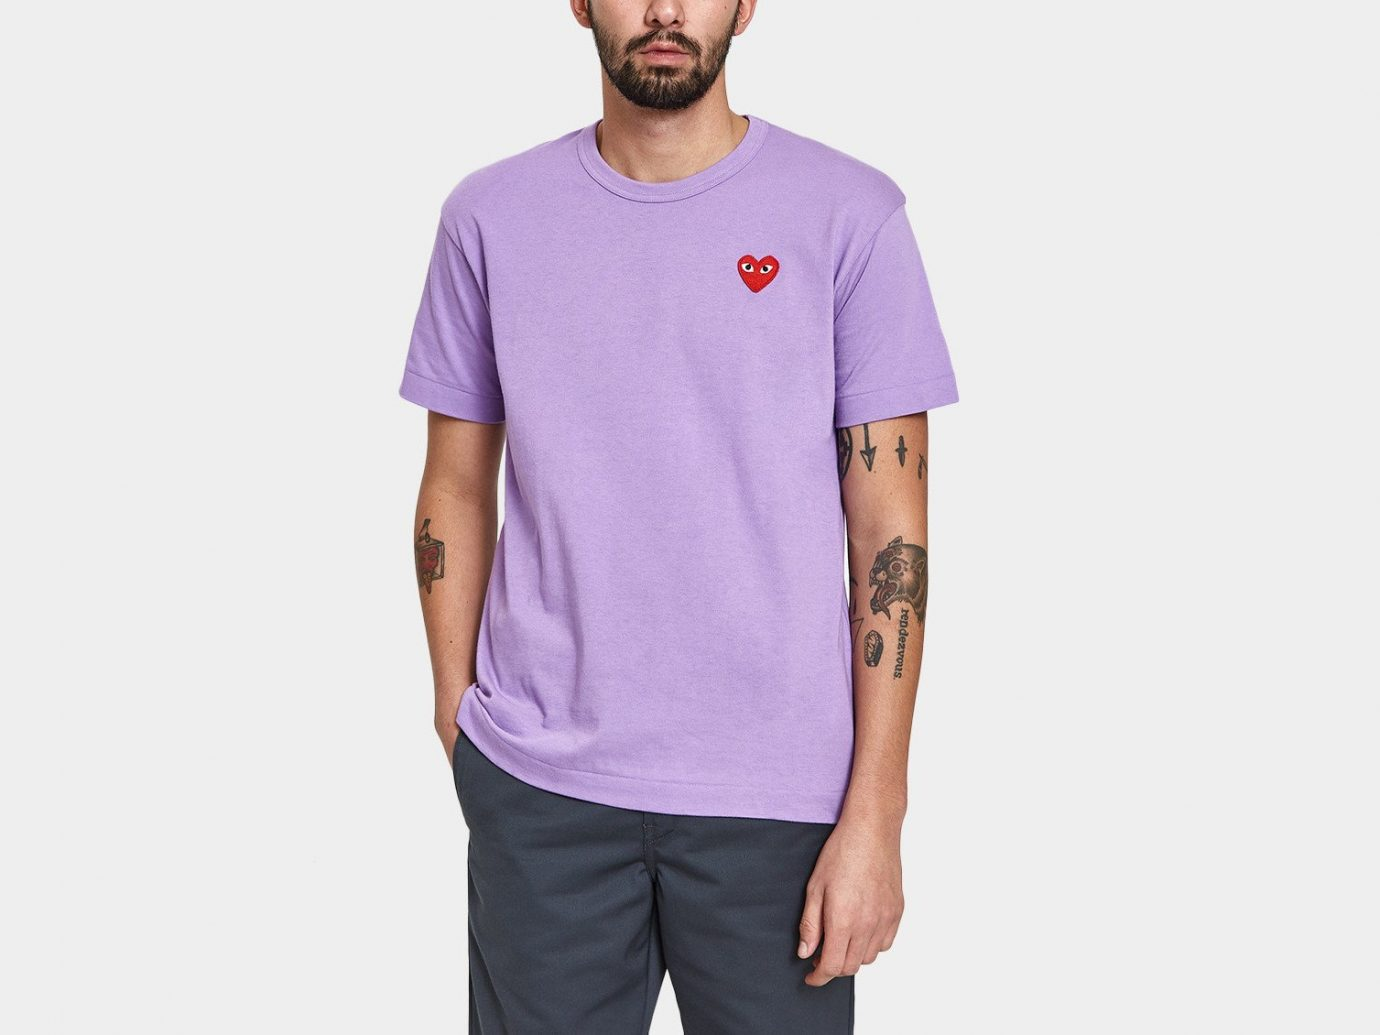 Spring Travel Style + Design Summer Travel Travel Shop man person standing t shirt clothing sleeve purple product shoulder violet neck posing pocket arm magenta long sleeved t shirt active shirt trouser male